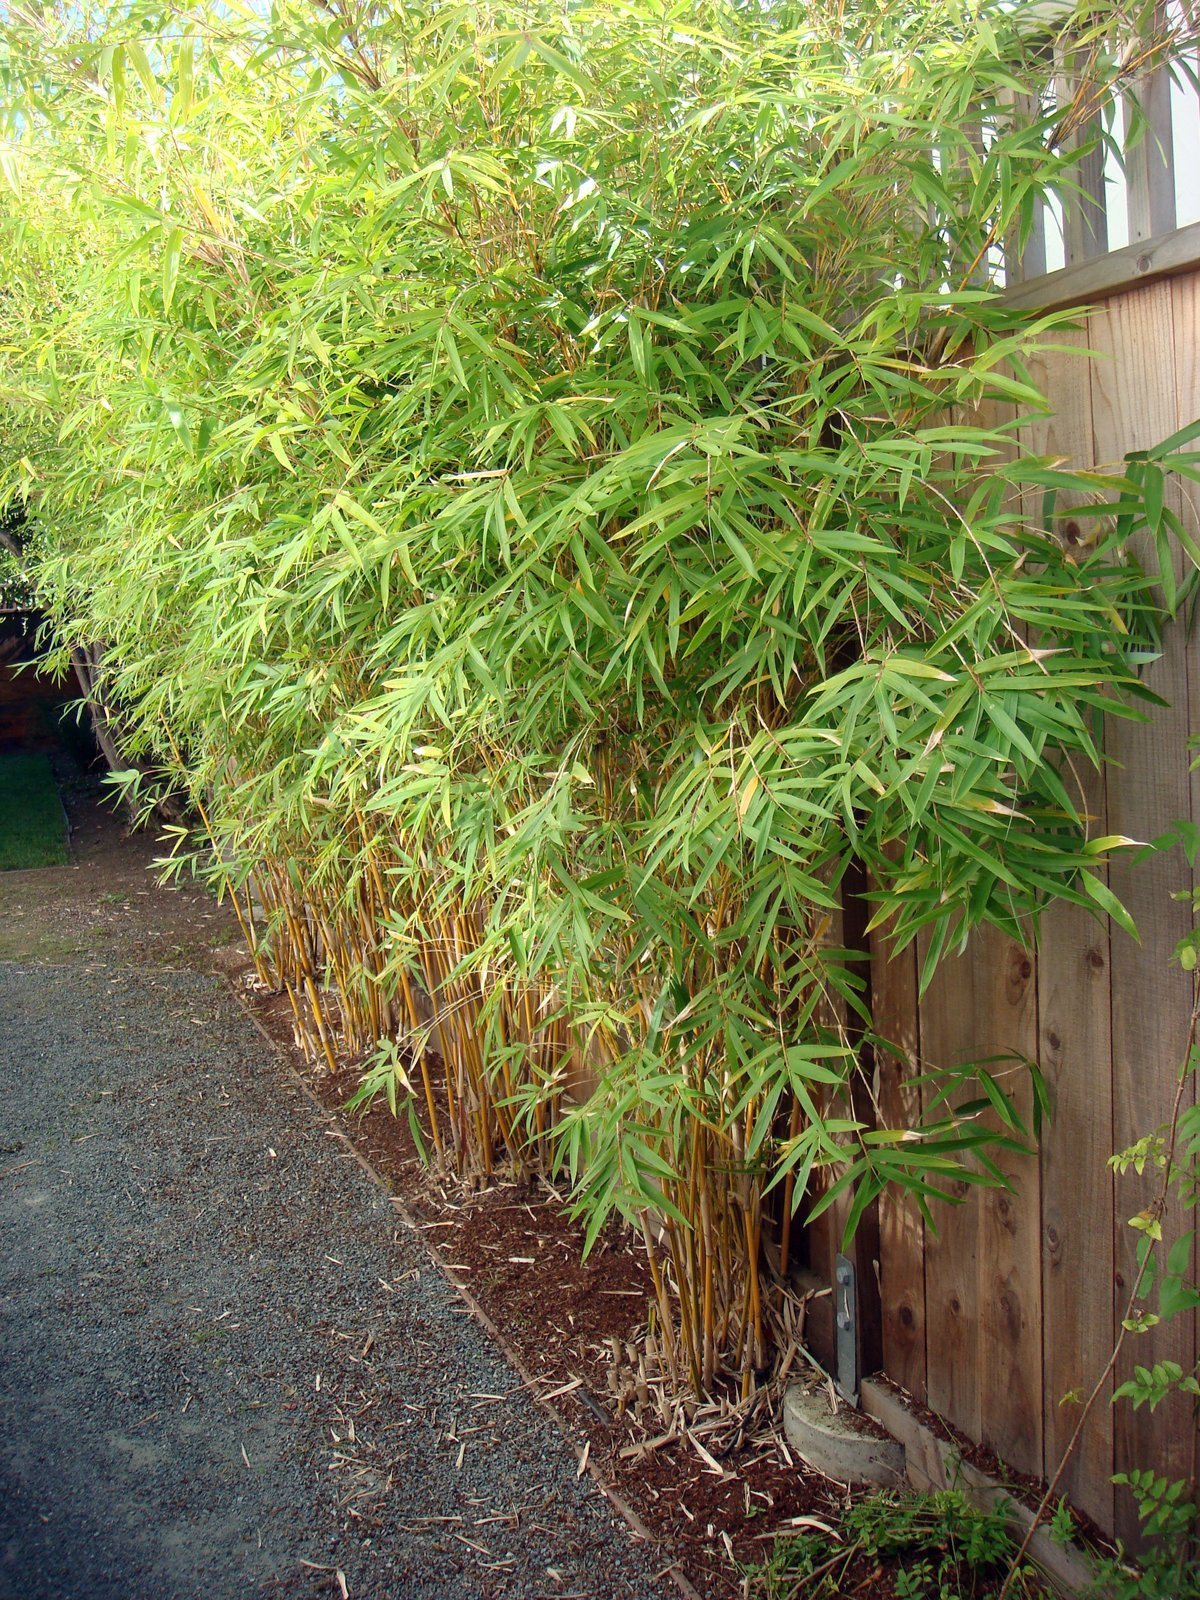 A living screen of bamboo provides additional privacy between neighbors. Landscape design measures like using native plants, avoiding invasive species, and opting for varieties that require no shearing garner points.  Building Green in Albany by Diana Budds